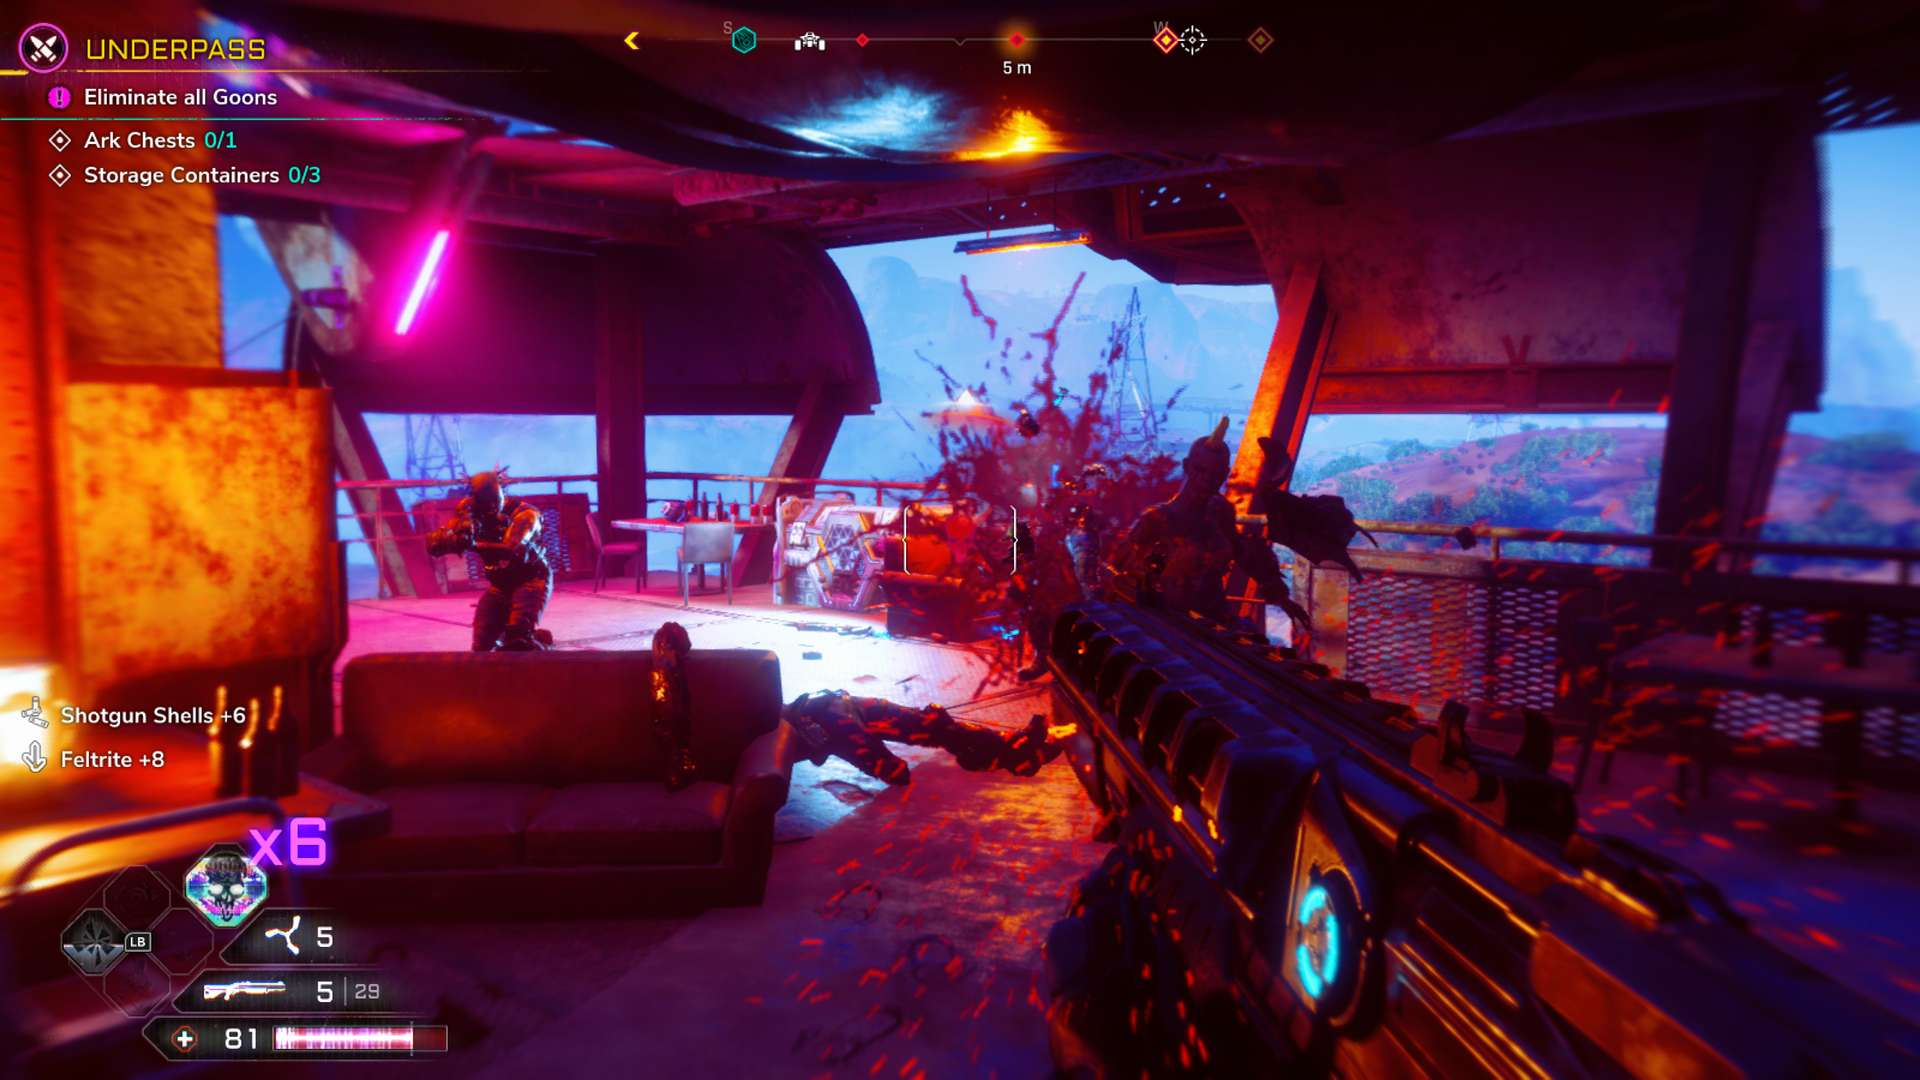 Rage 2 Shooting an Enemy with Overpowered Shotgun in Overdrive Mode